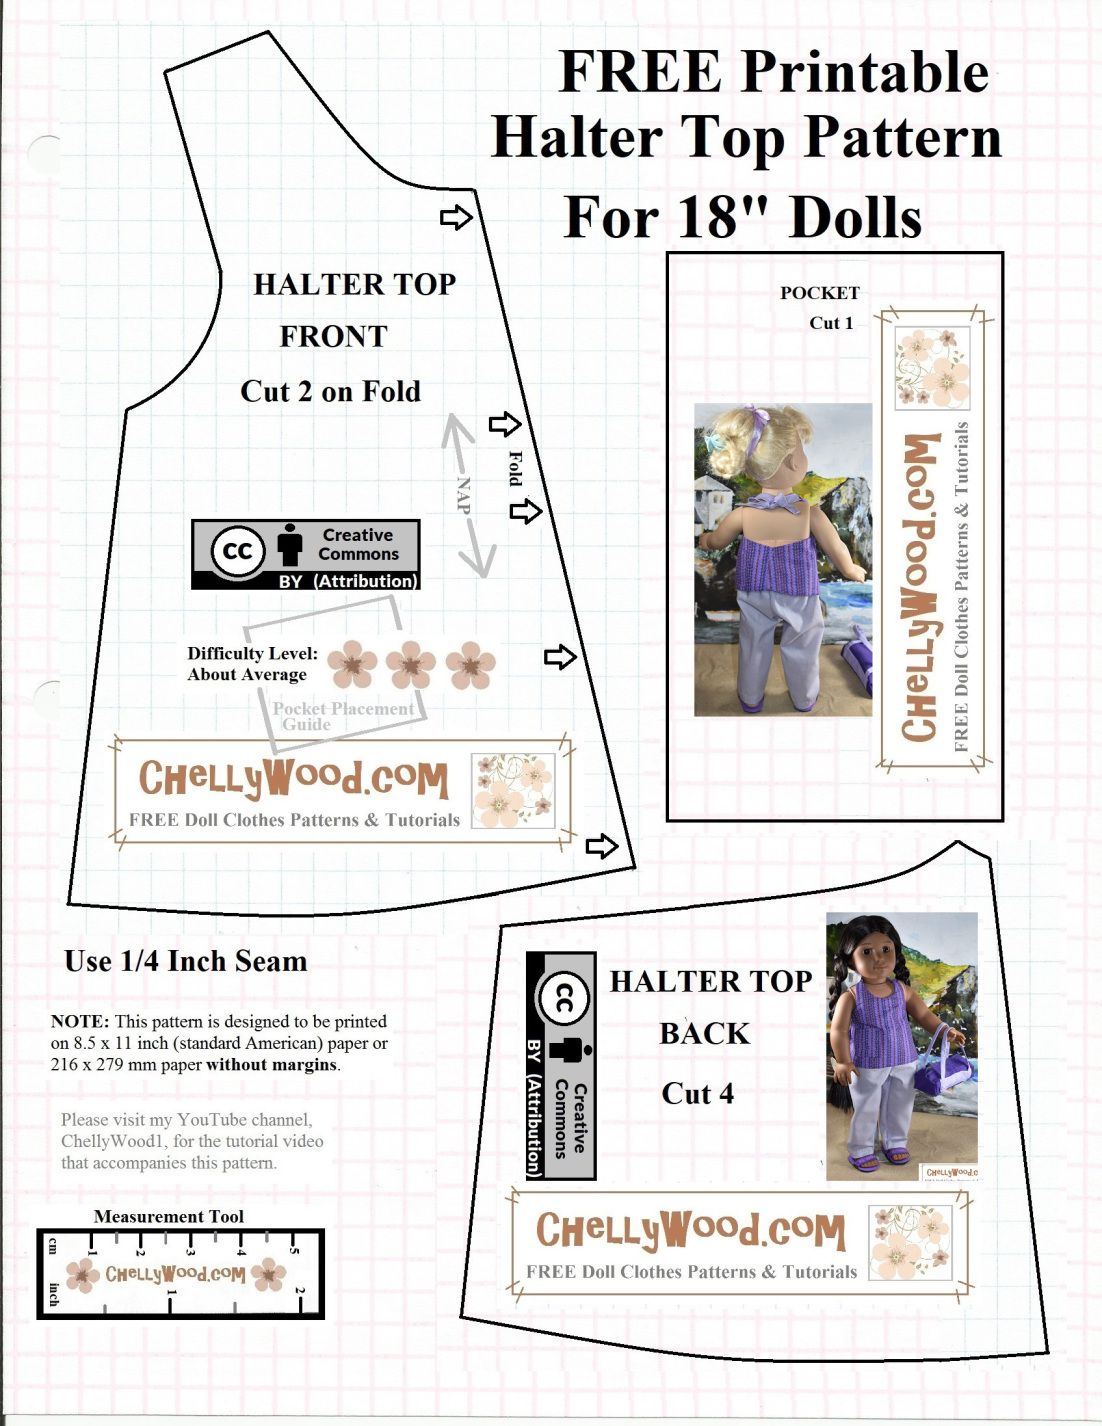 This Image Is A Free Printable Pattern For American Girl Doll - American Girl Doll Clothes Patterns Free Printable